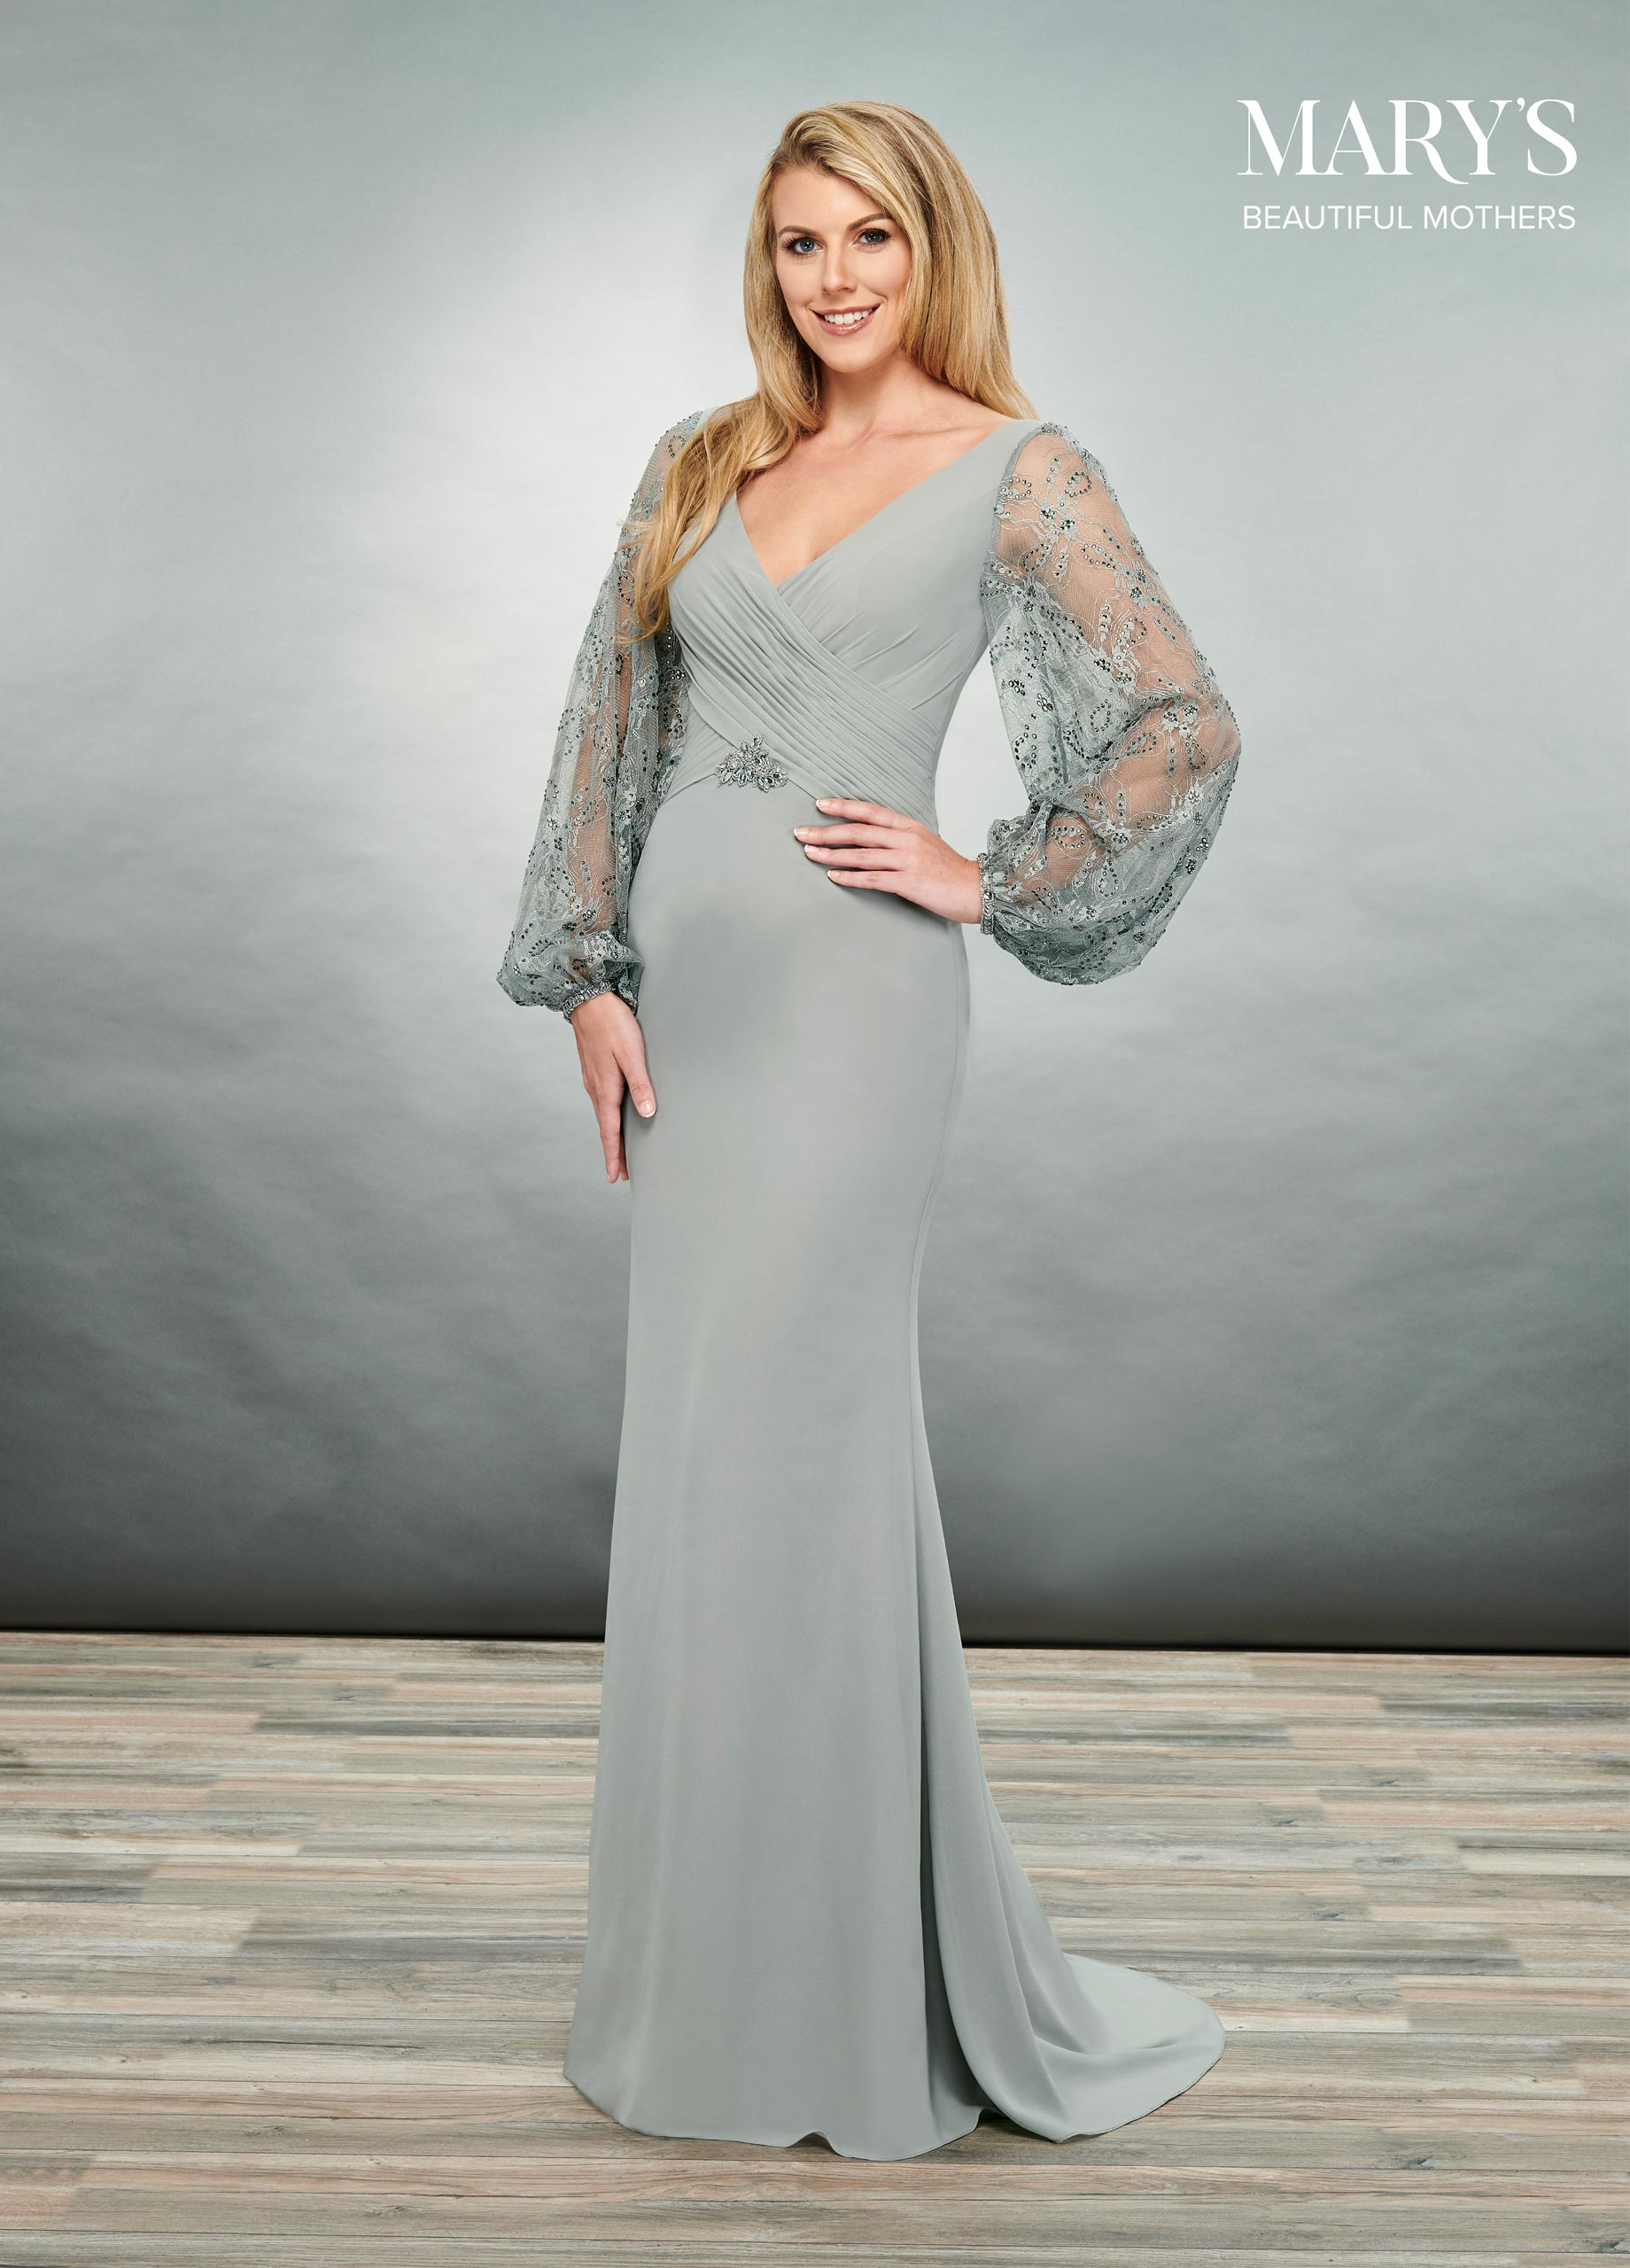 Mother Of The Bride Dresses | Beautiful Mothers | Style - MB8082